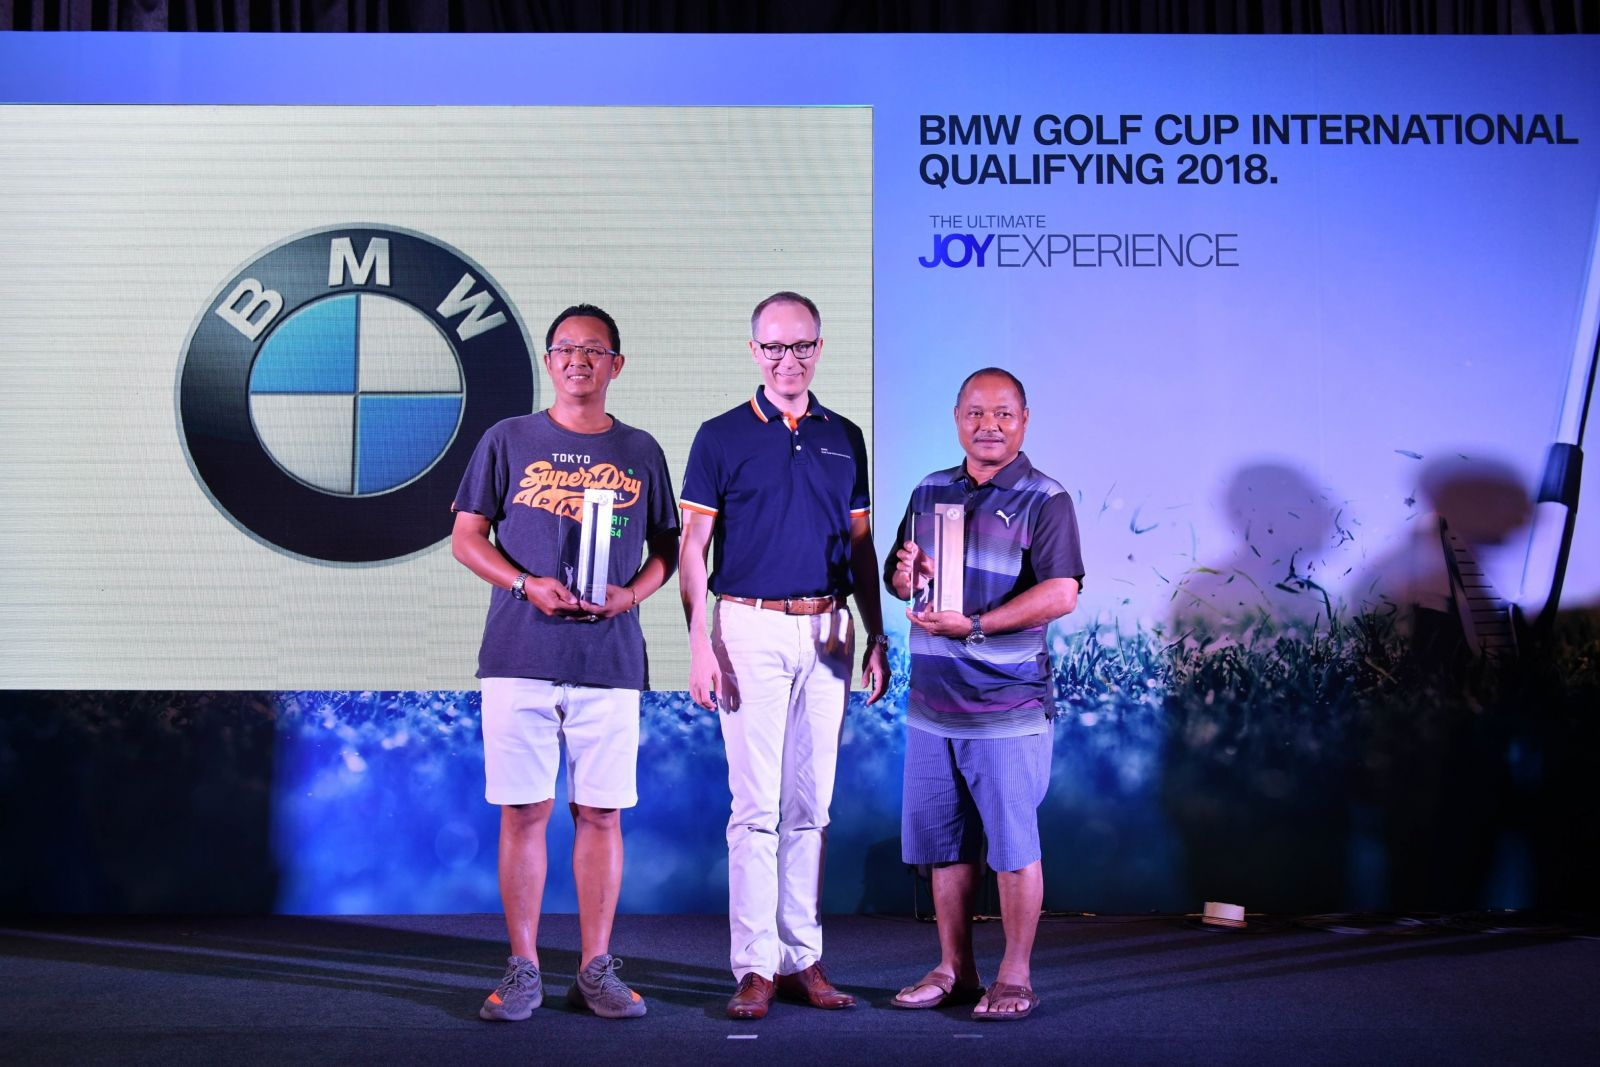 BMW Golf Cup International 2018